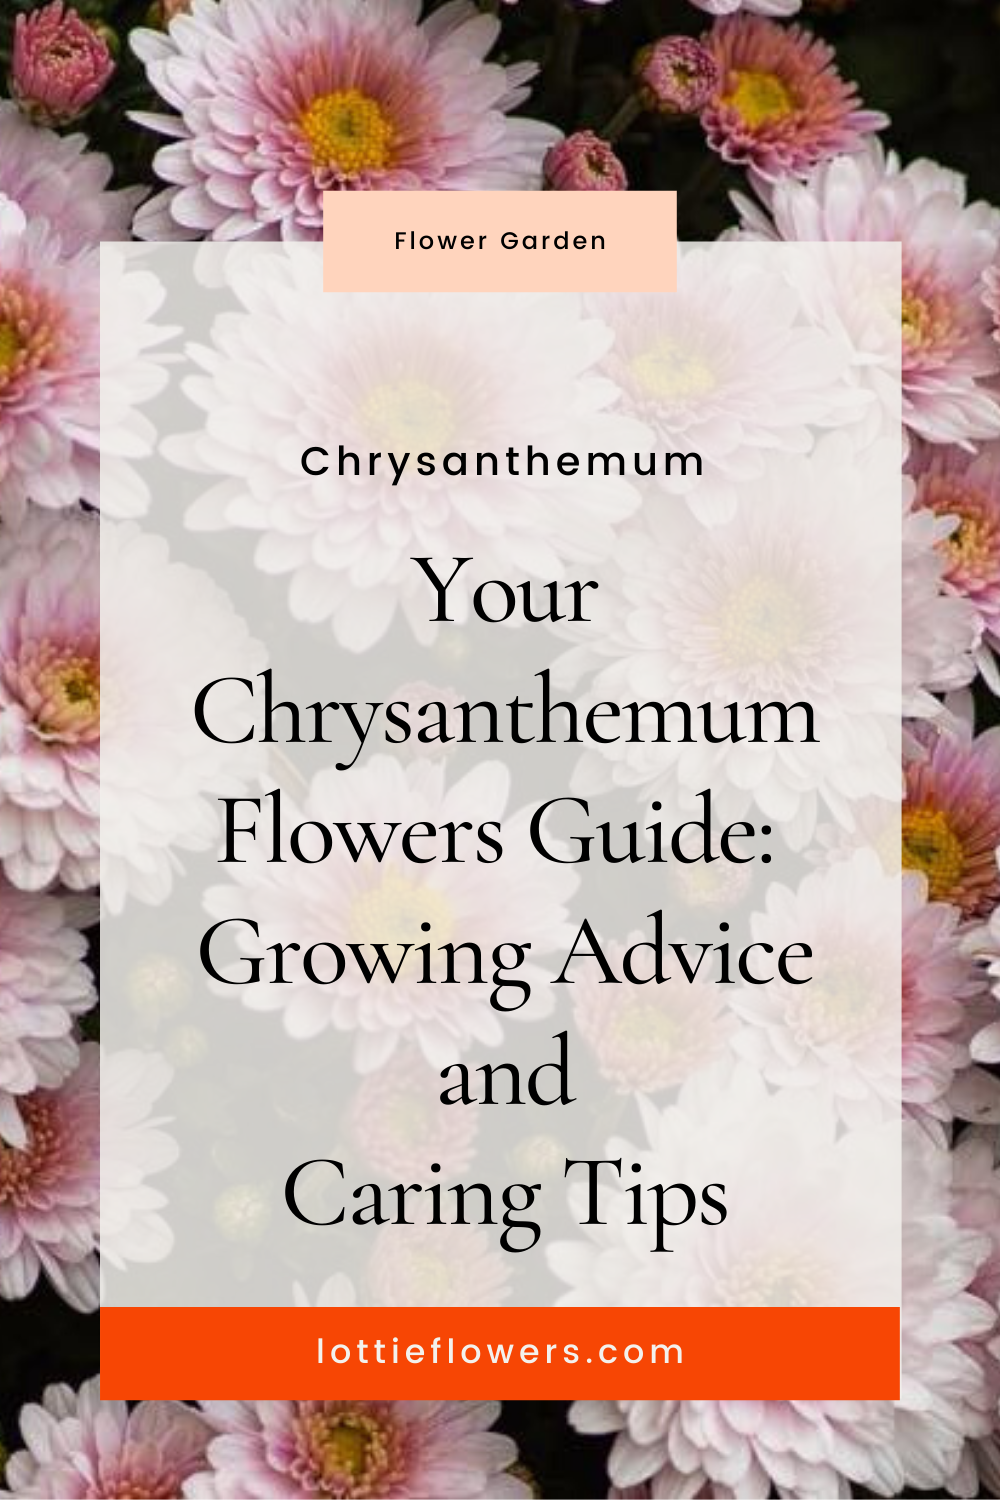 Chrysanthemum Flowers Guide Growing Advice And Caring Tips To Grow Your Own Flower Garden In 2020 Flower Guide Chrysanthemum Flower Flower Garden